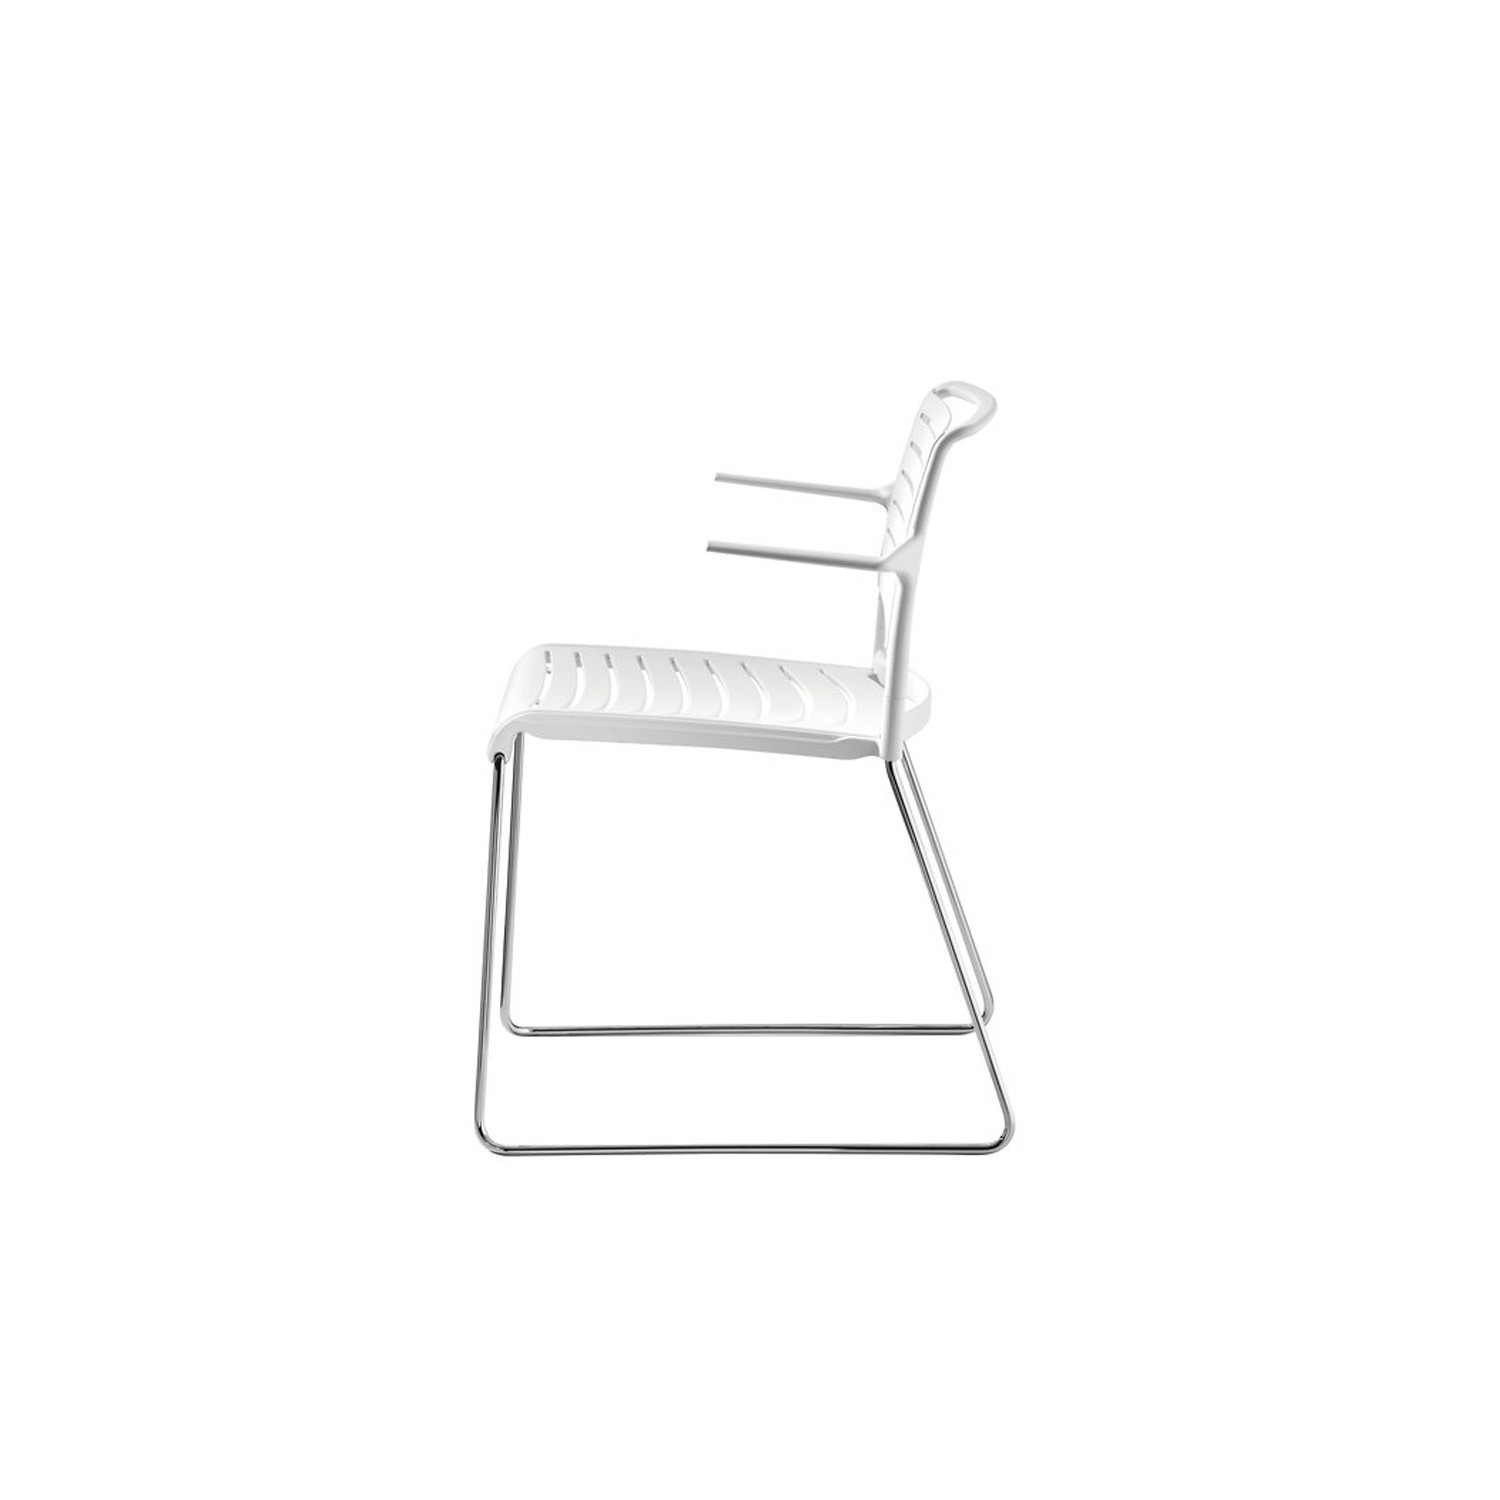 Aline-S Chair Side View